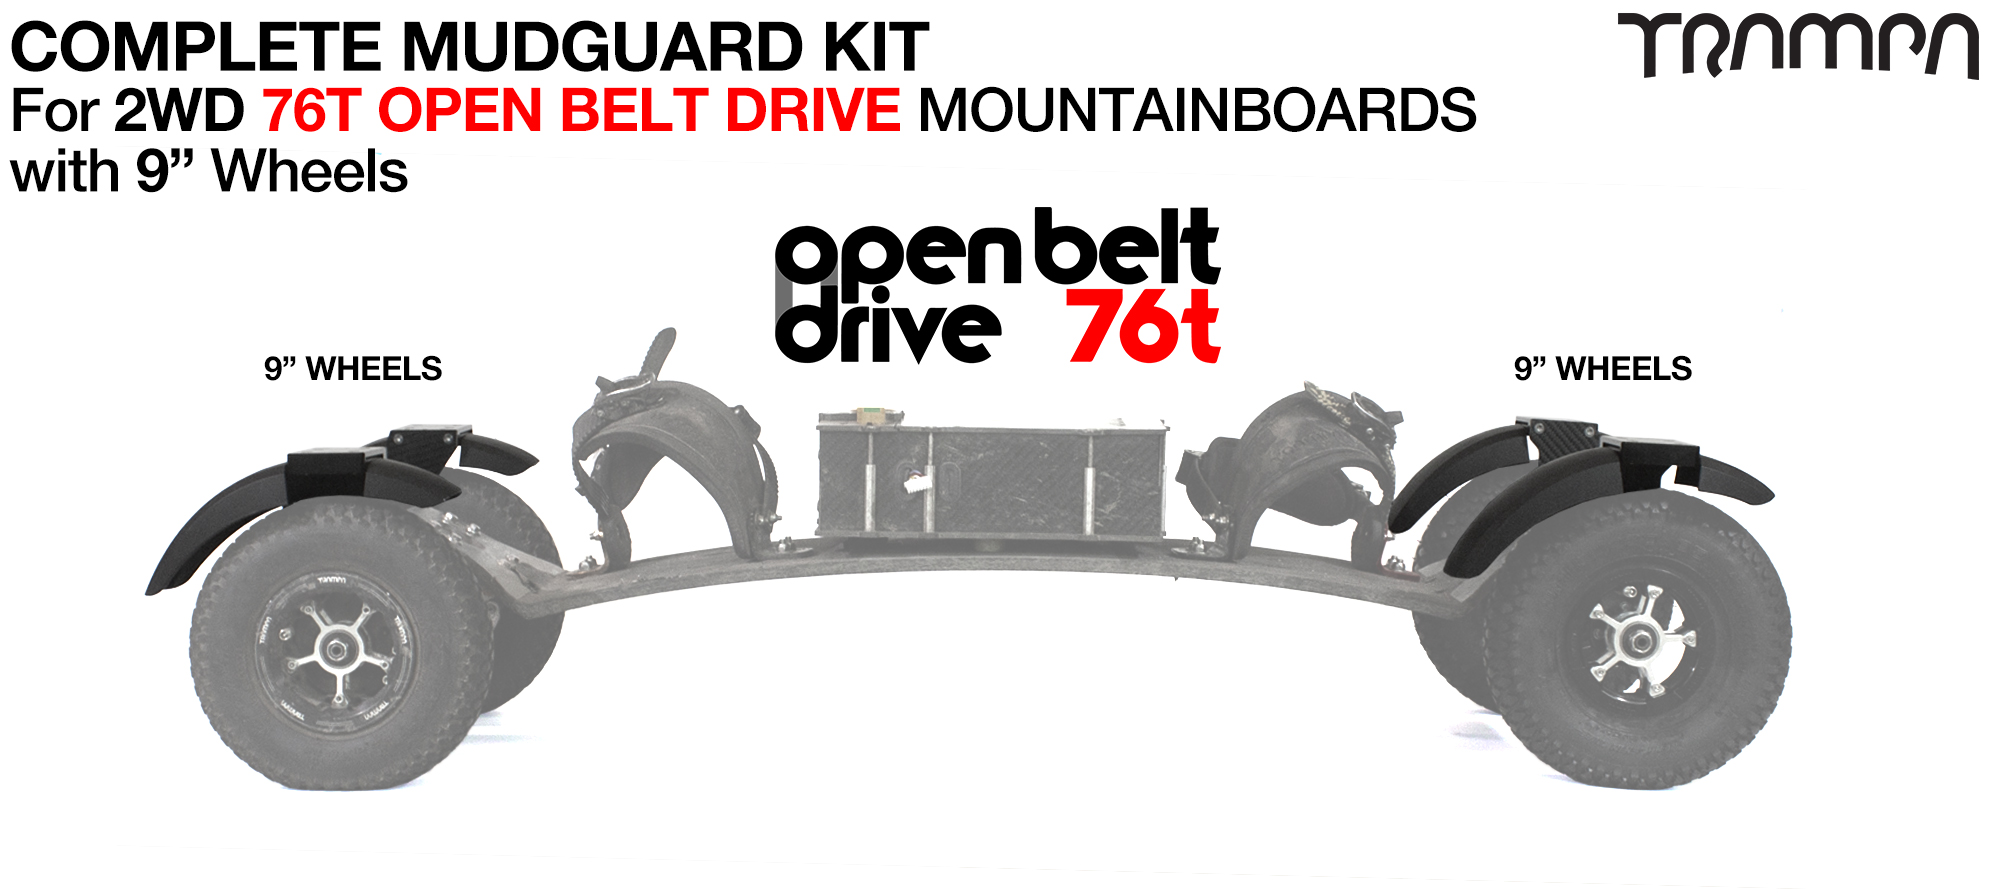 "Full Mudguard Kit for 2WD 76T OPEN BELT DRIVE Mountainboards - 9"" Wheels All round"